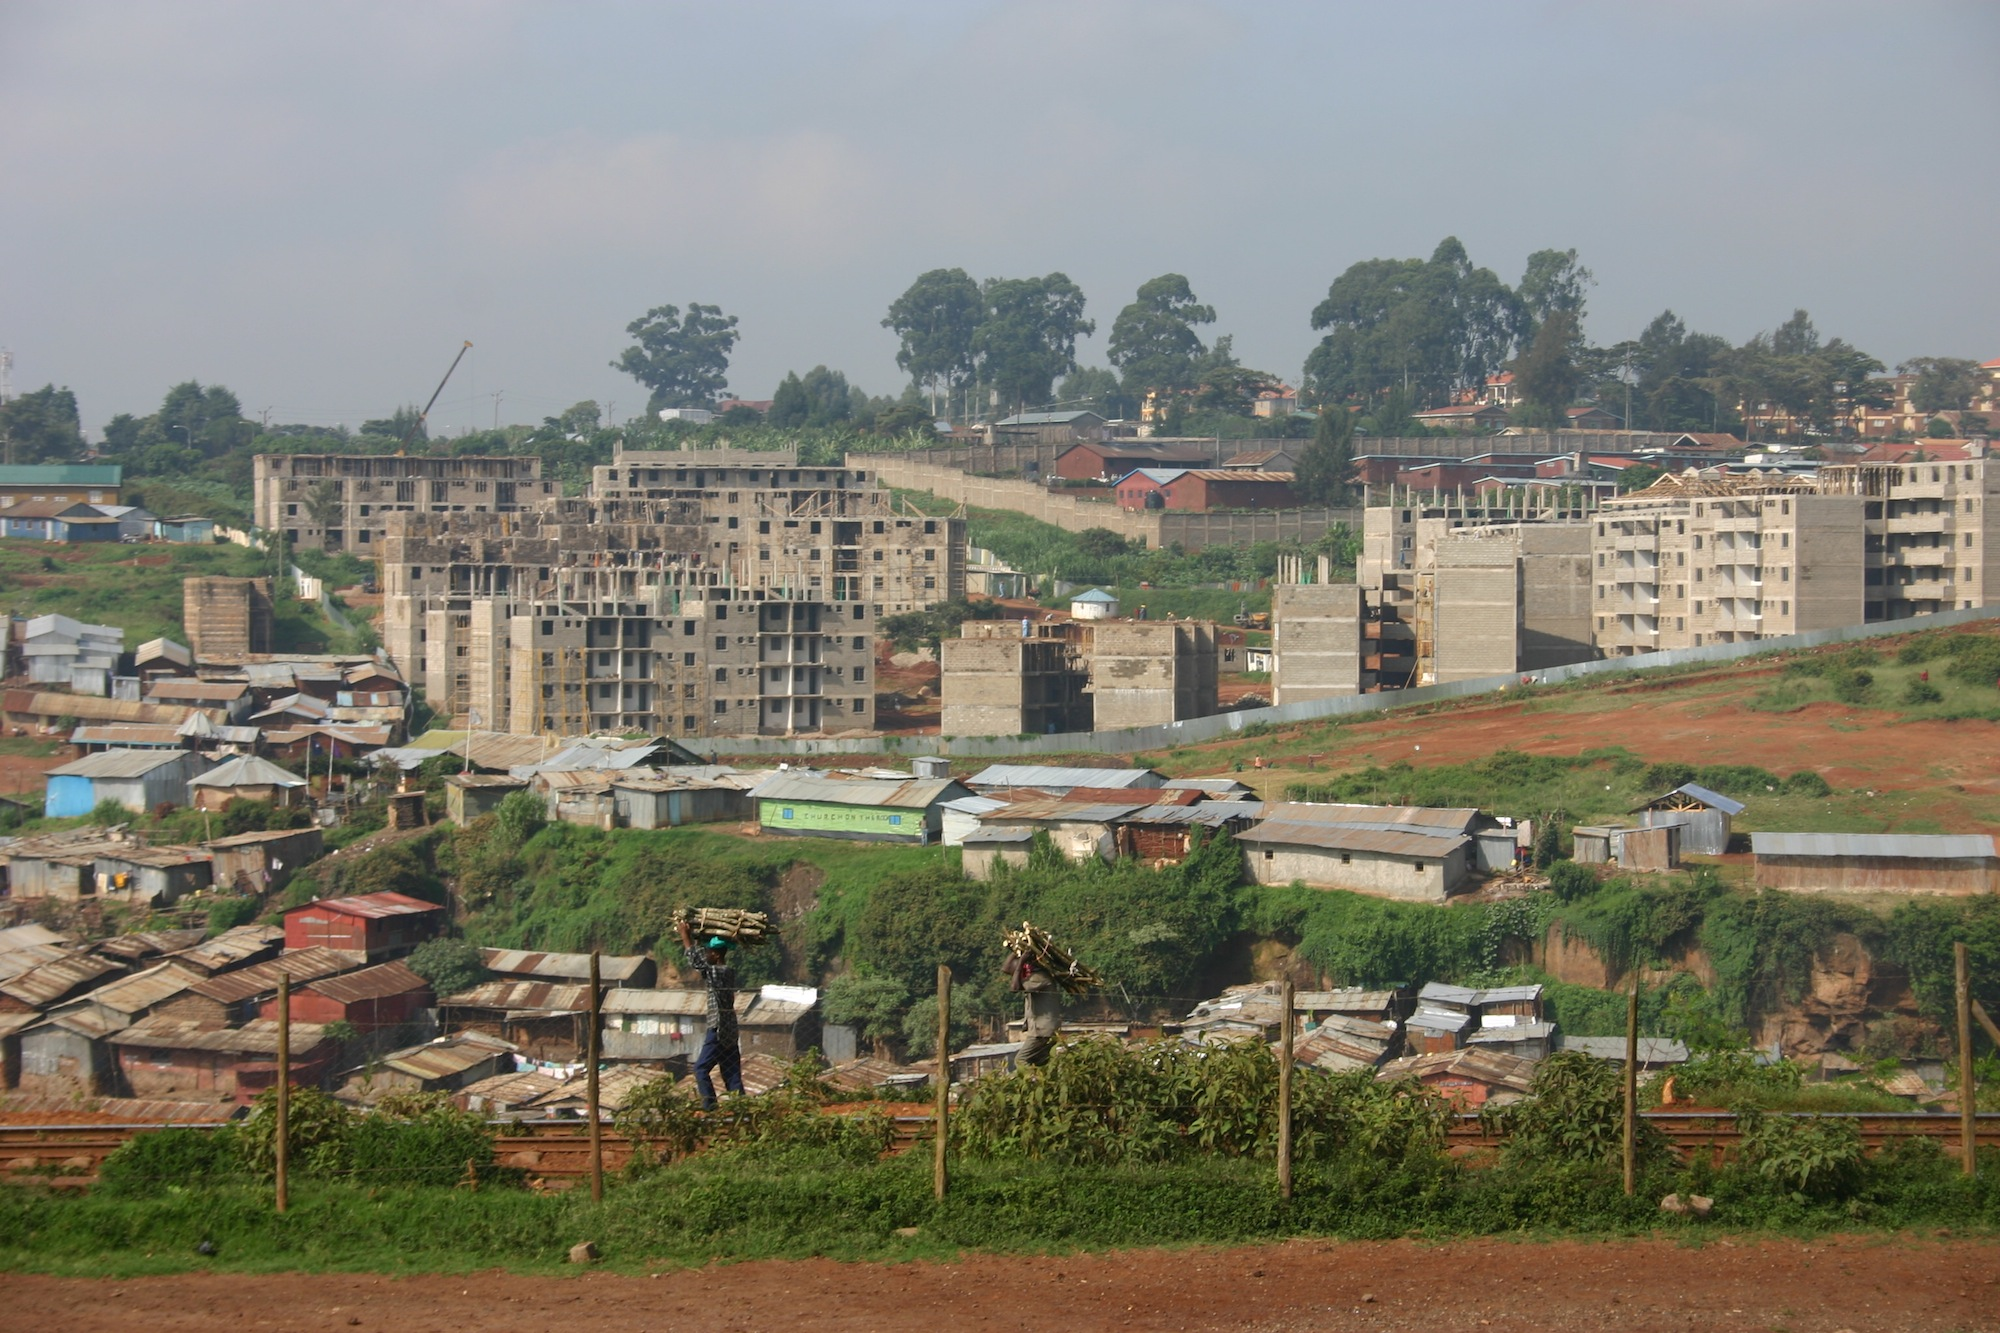 The transformation of Kibera from Africa's largest slum to promised land